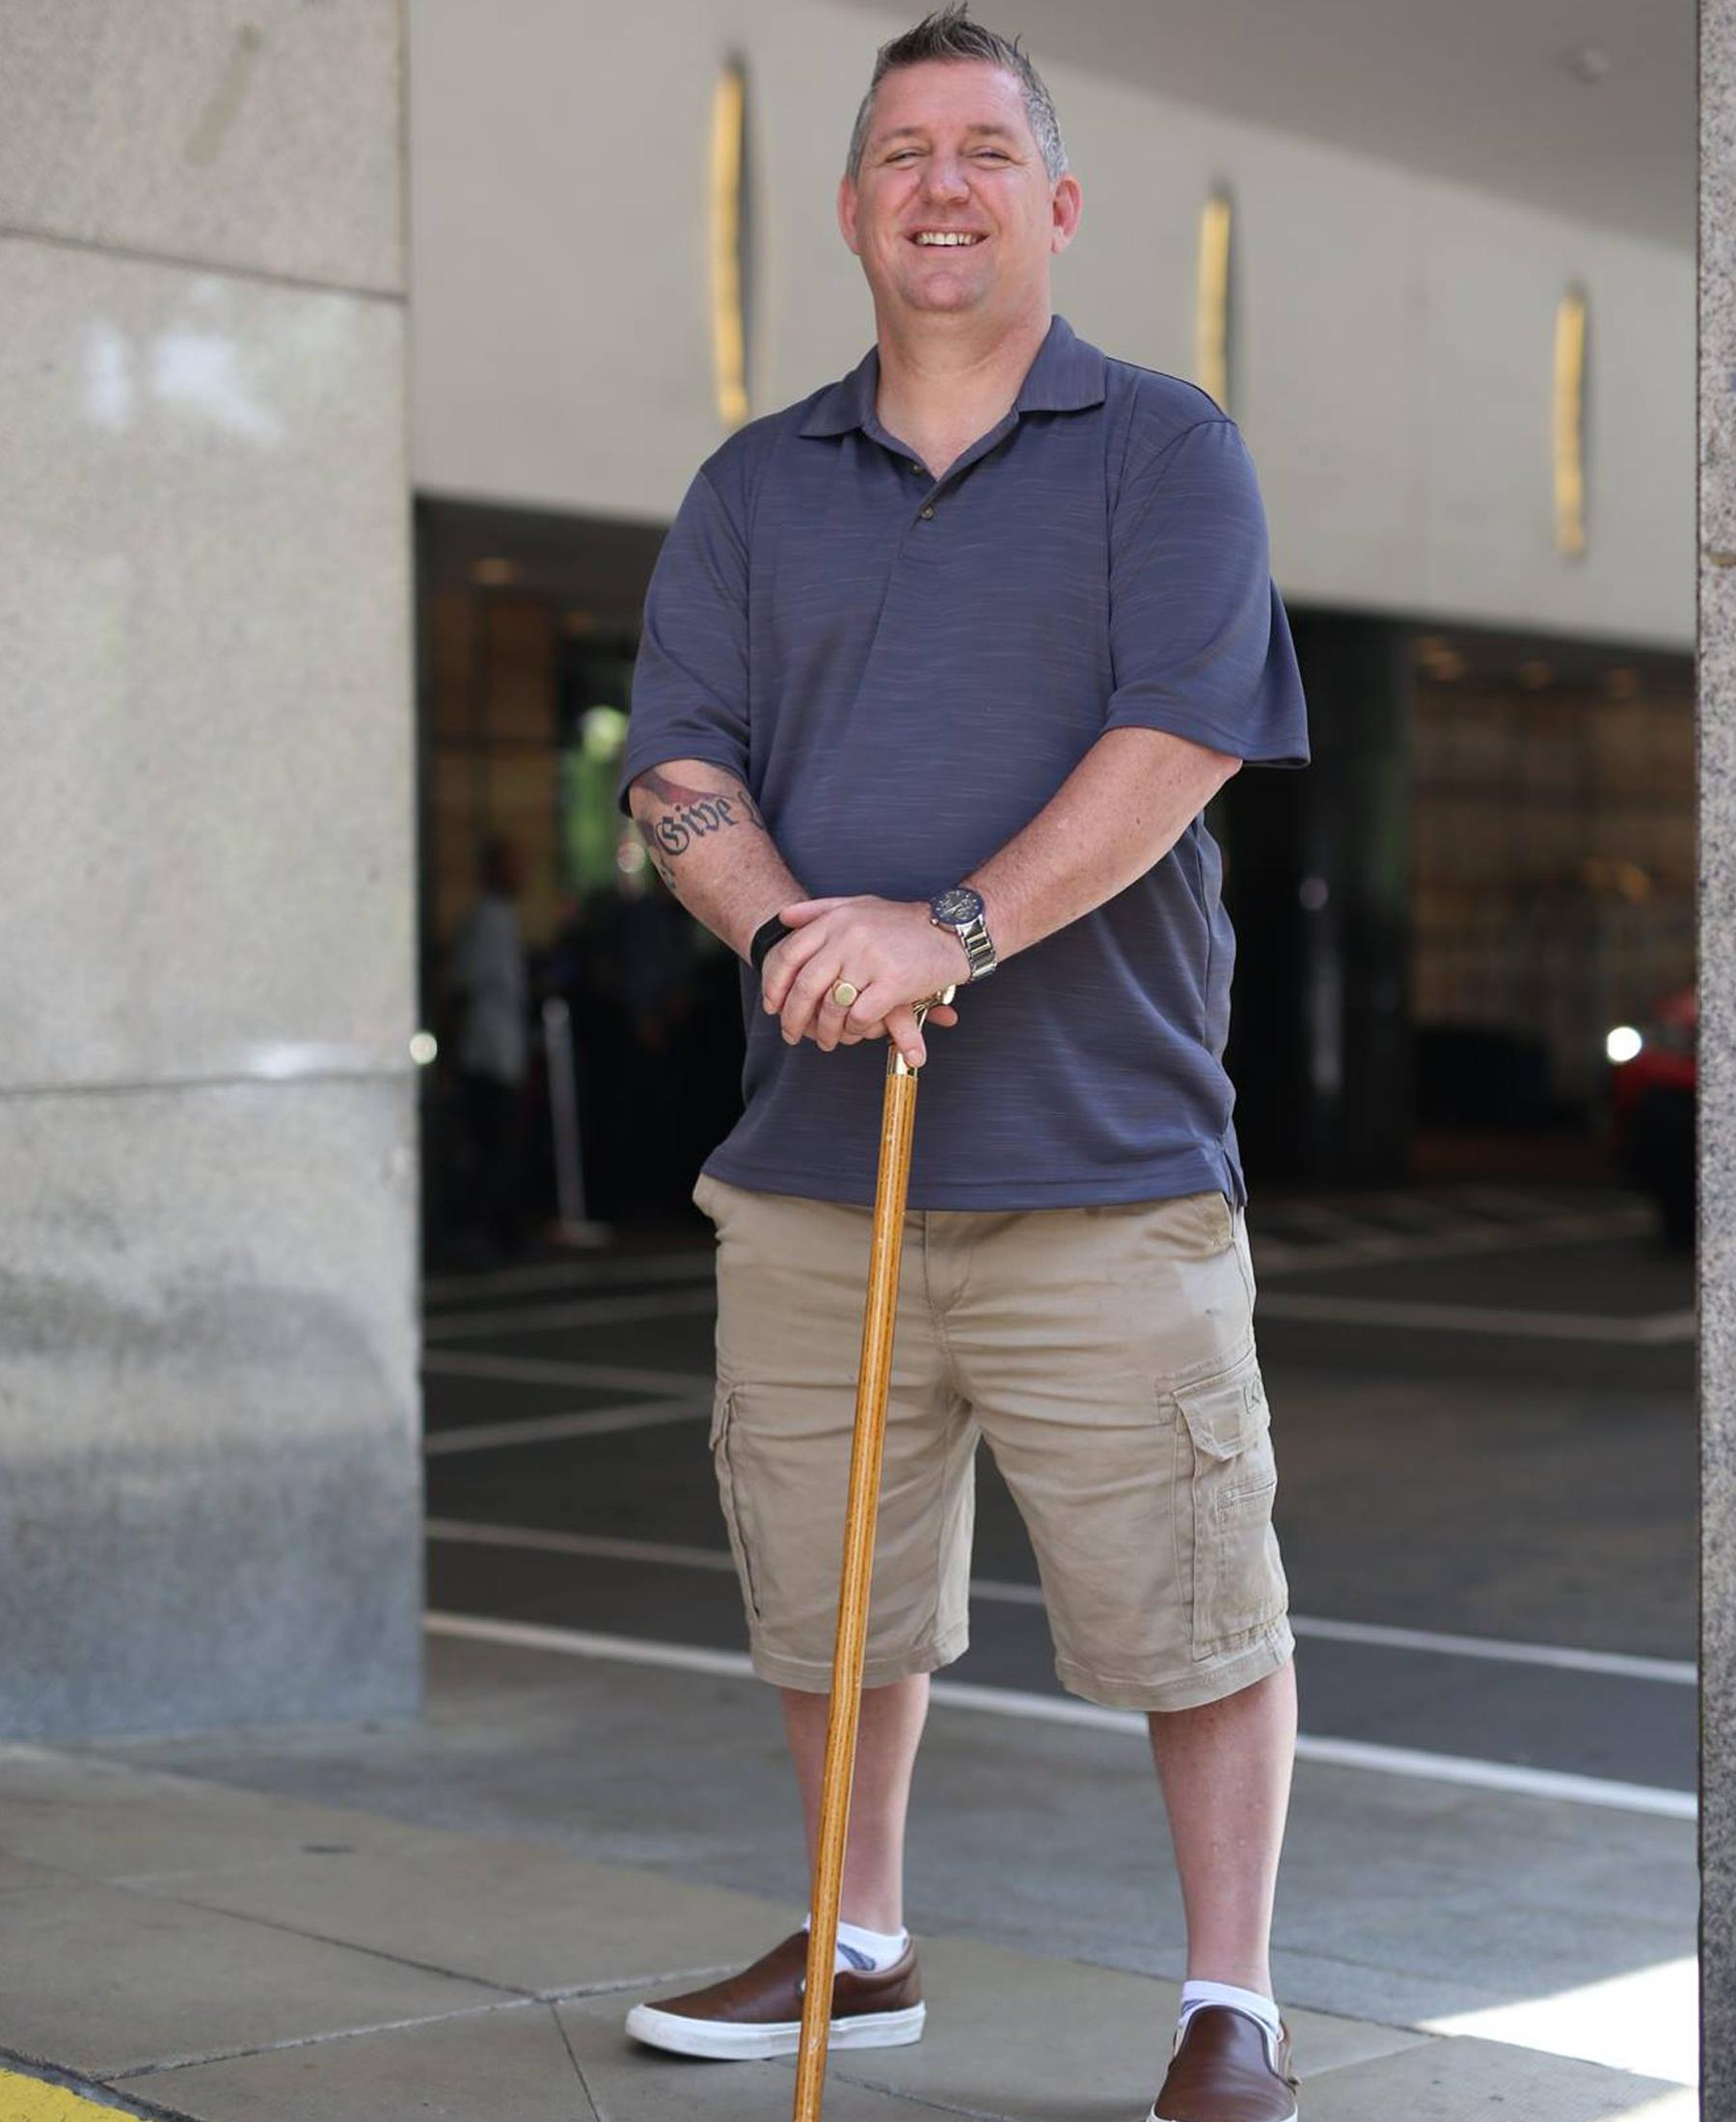 Smiling man with cane